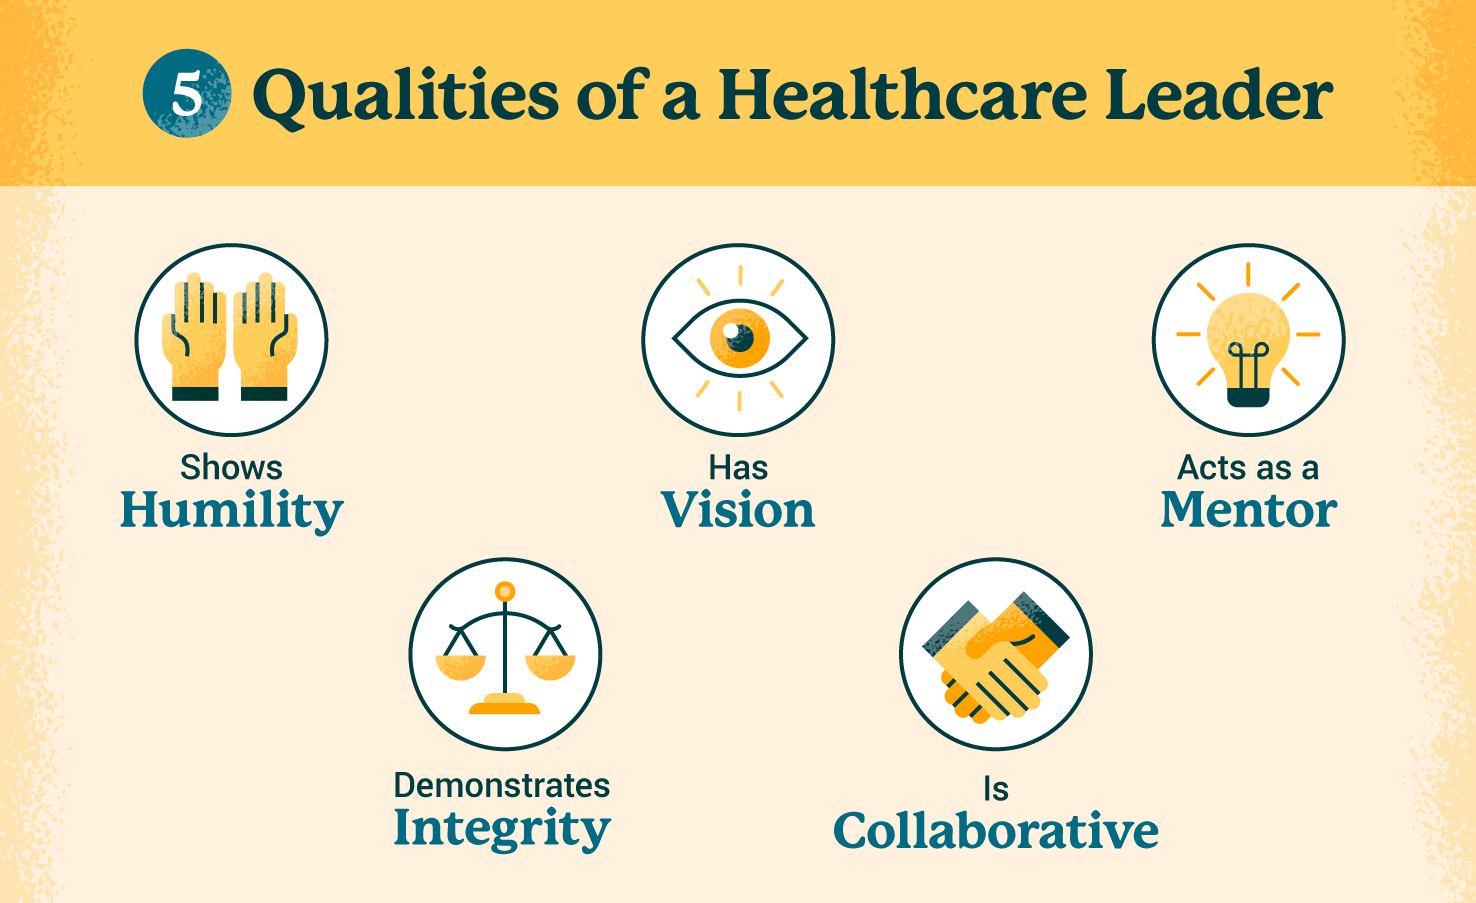 5 qualities of a healthcare leader graphic